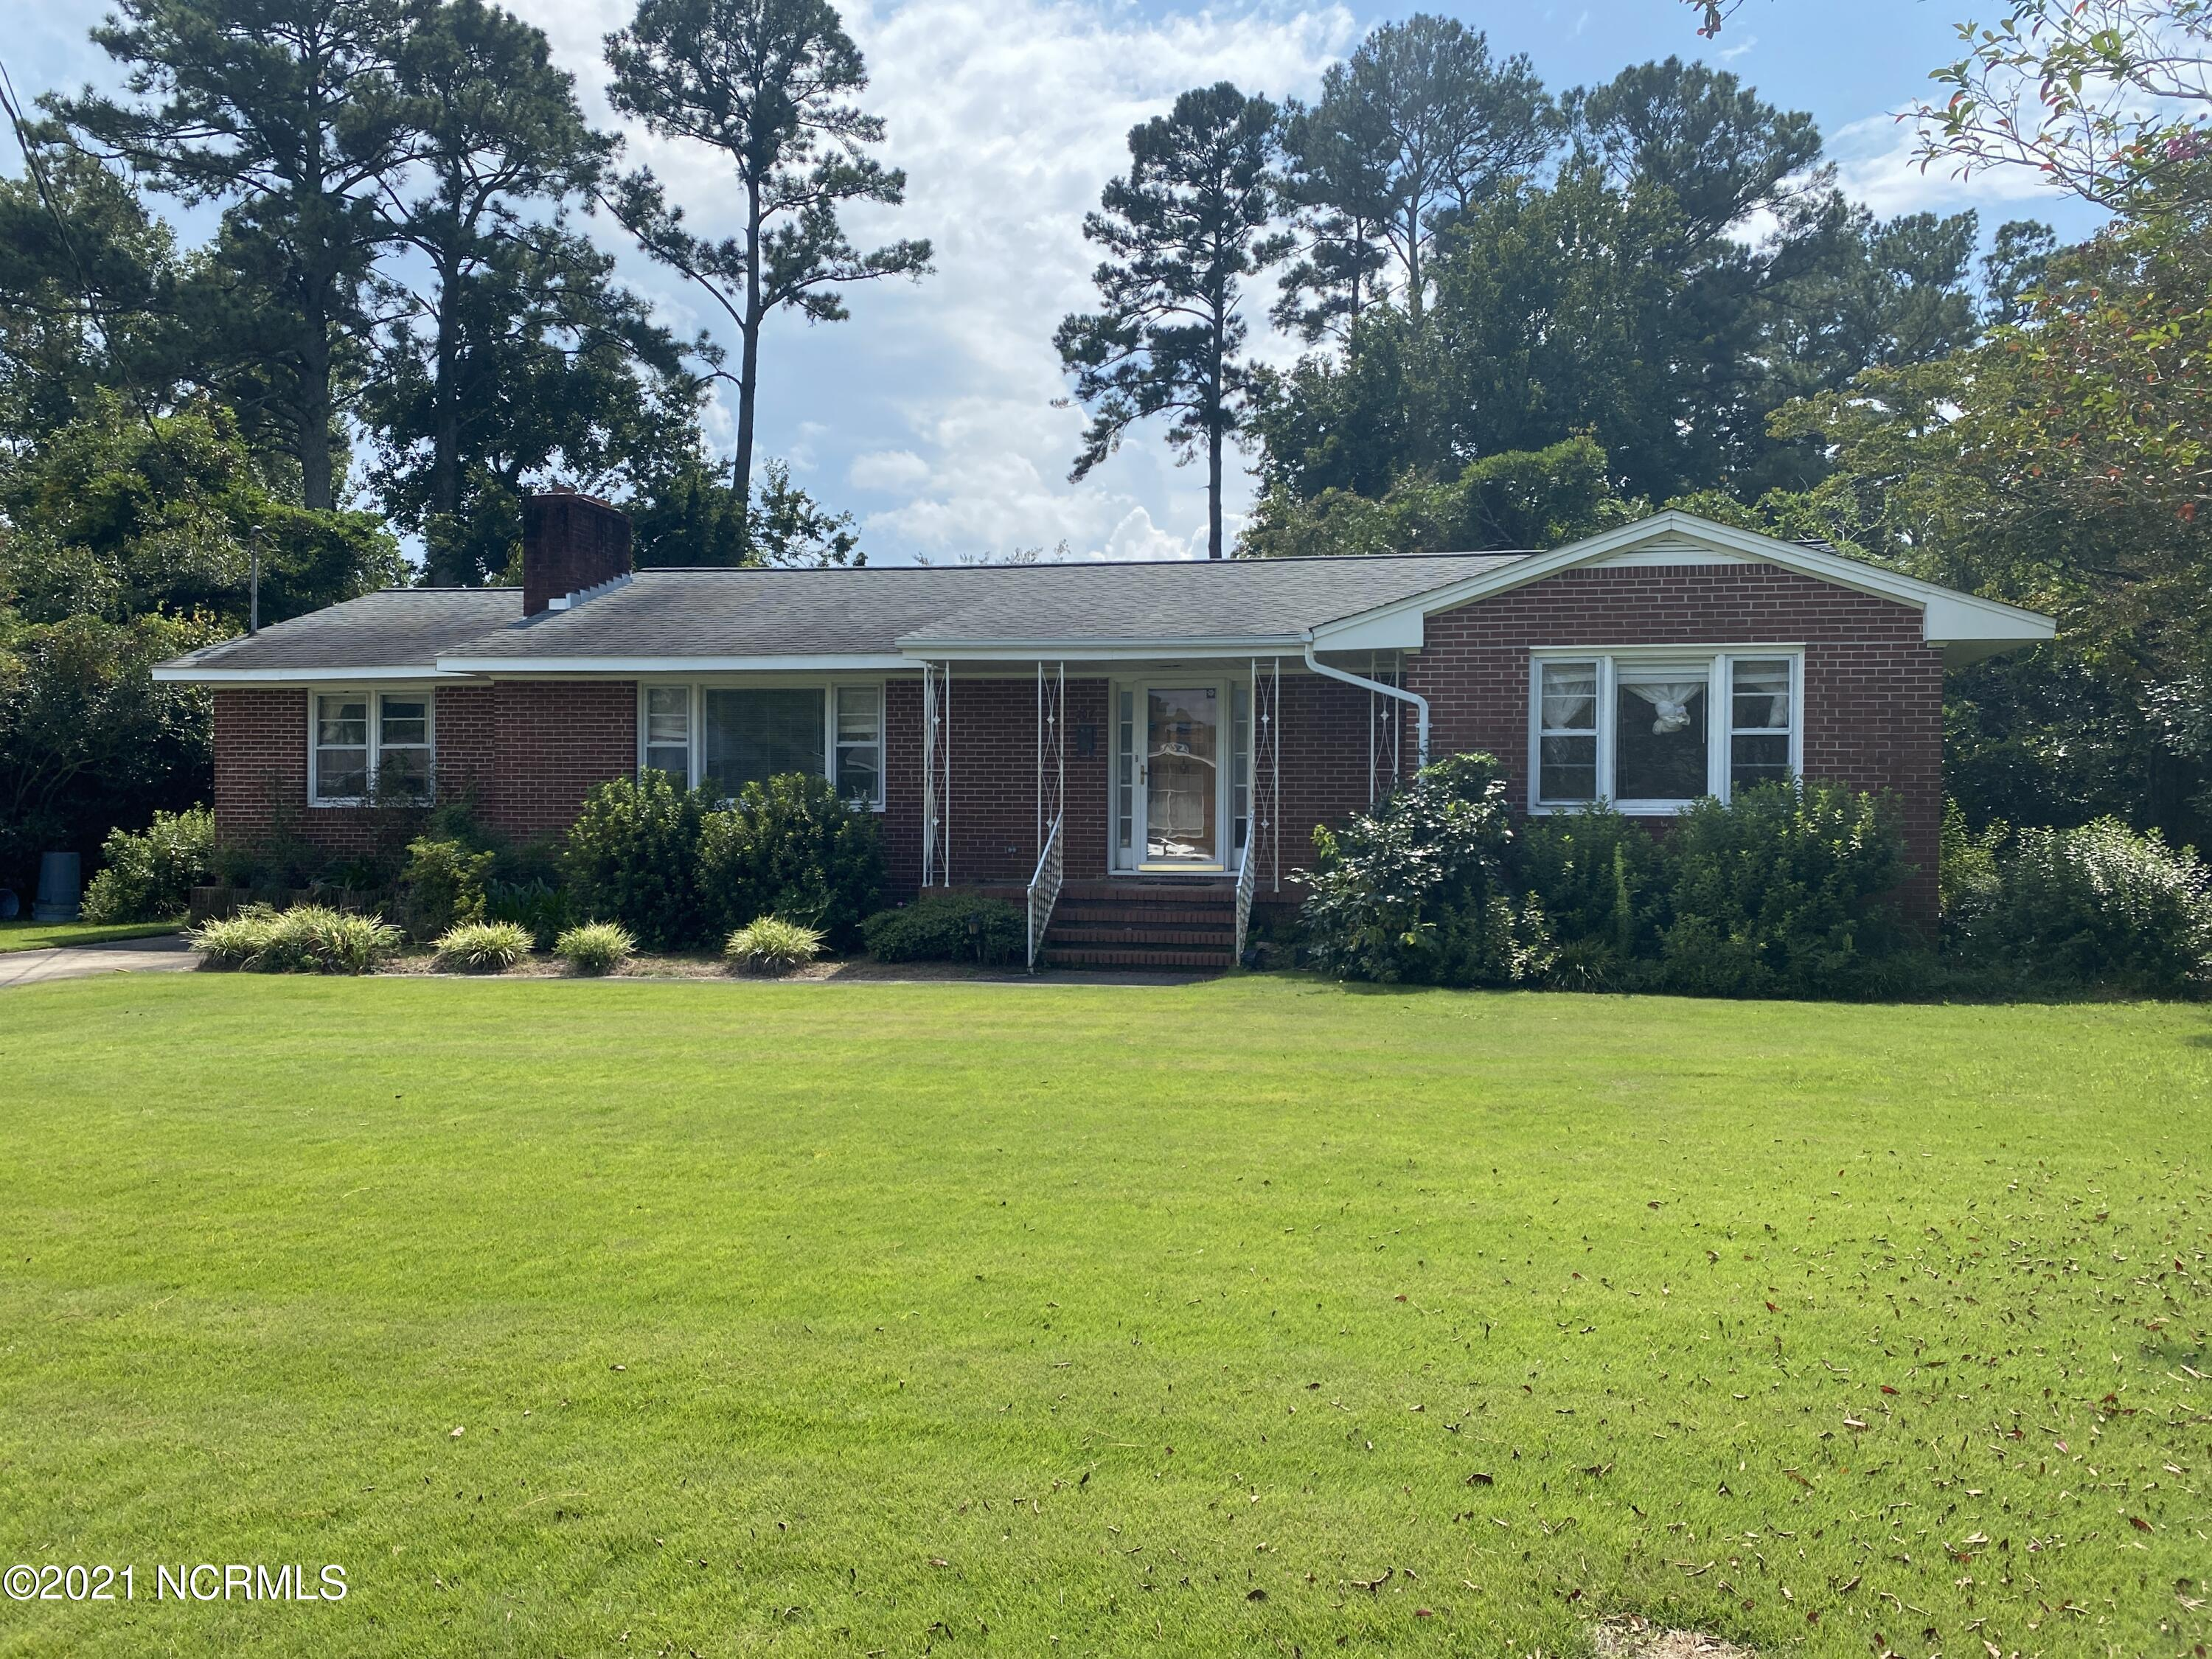 GREAT LOCATION!!  In the heart of Jacksonville.  Take a look at this all brick 3 bedroom, 1.5 bath home home with beautiful hardwood floors. This home has a lot of potential.  Just needs a little TLC. Ready to move into today.  Don't miss out on the opportunity to make this home yours.  Walking distance to all three schools.  Close to shopping, restaurants, and much more.  Call today to schedule your showing. Hoe is being sold as is.